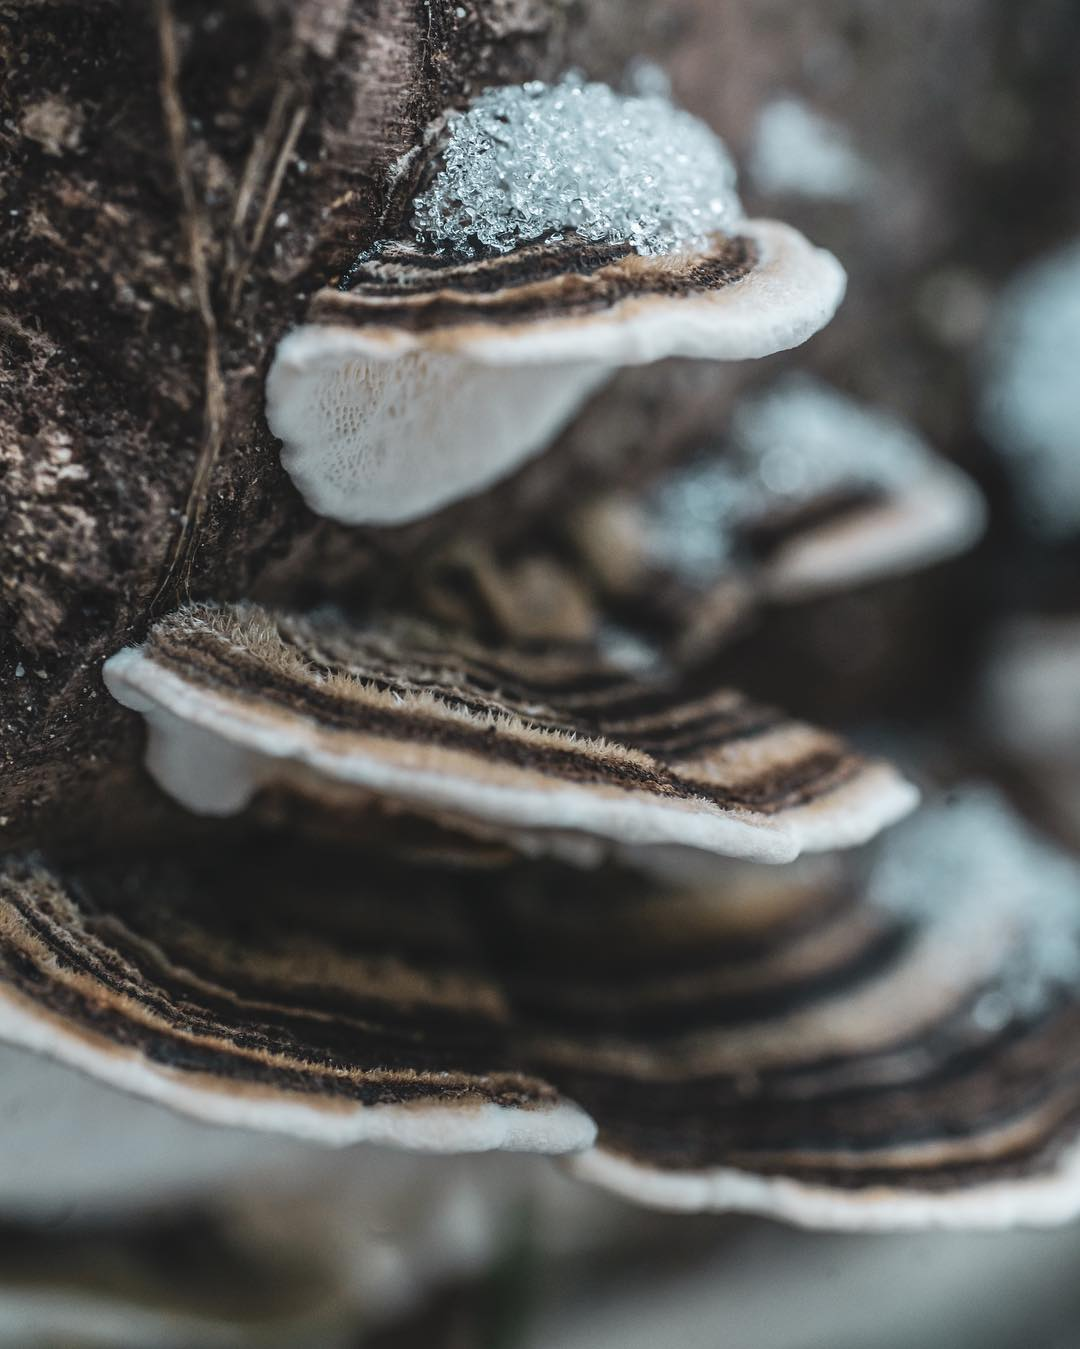 Turkey tail in the snow